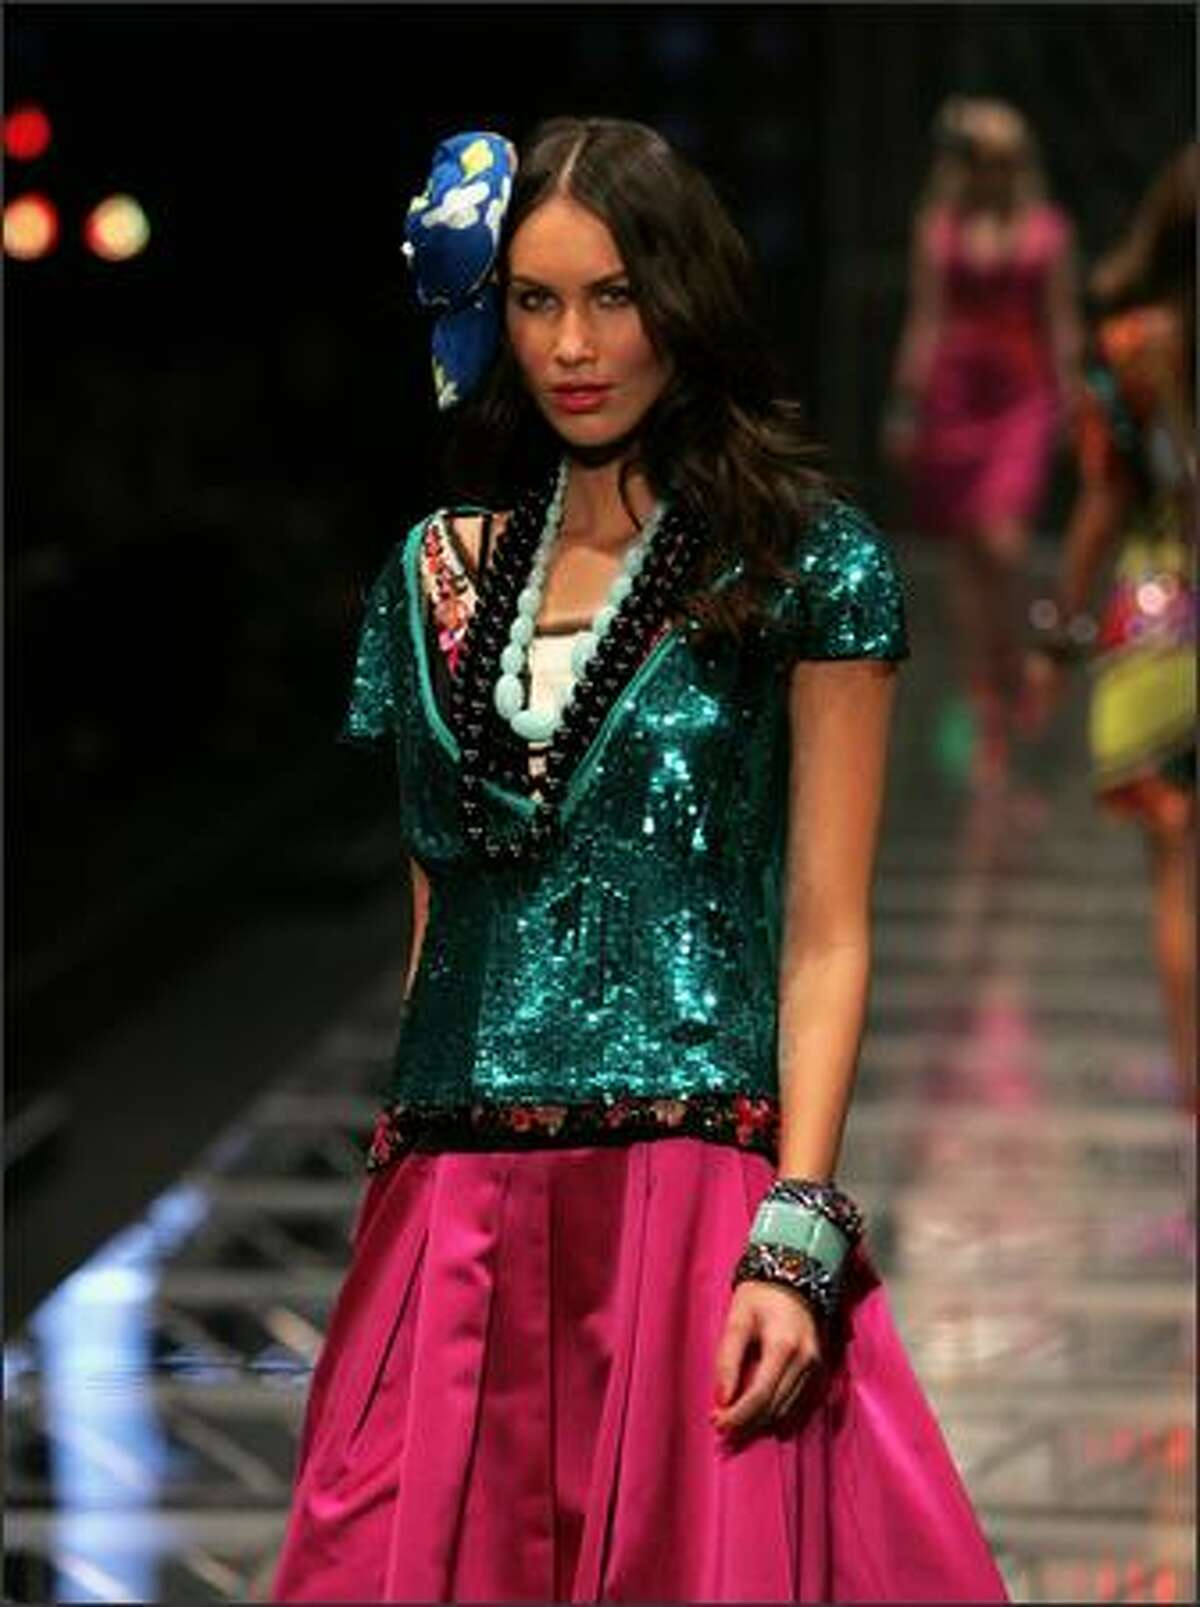 A model showcases designs by Trelise Cooper on the catwalk at the David Jones Summer 2008 Collections Launch 'Summer In The City' event at the Royal Hall of Industries in Sydney, Australia.